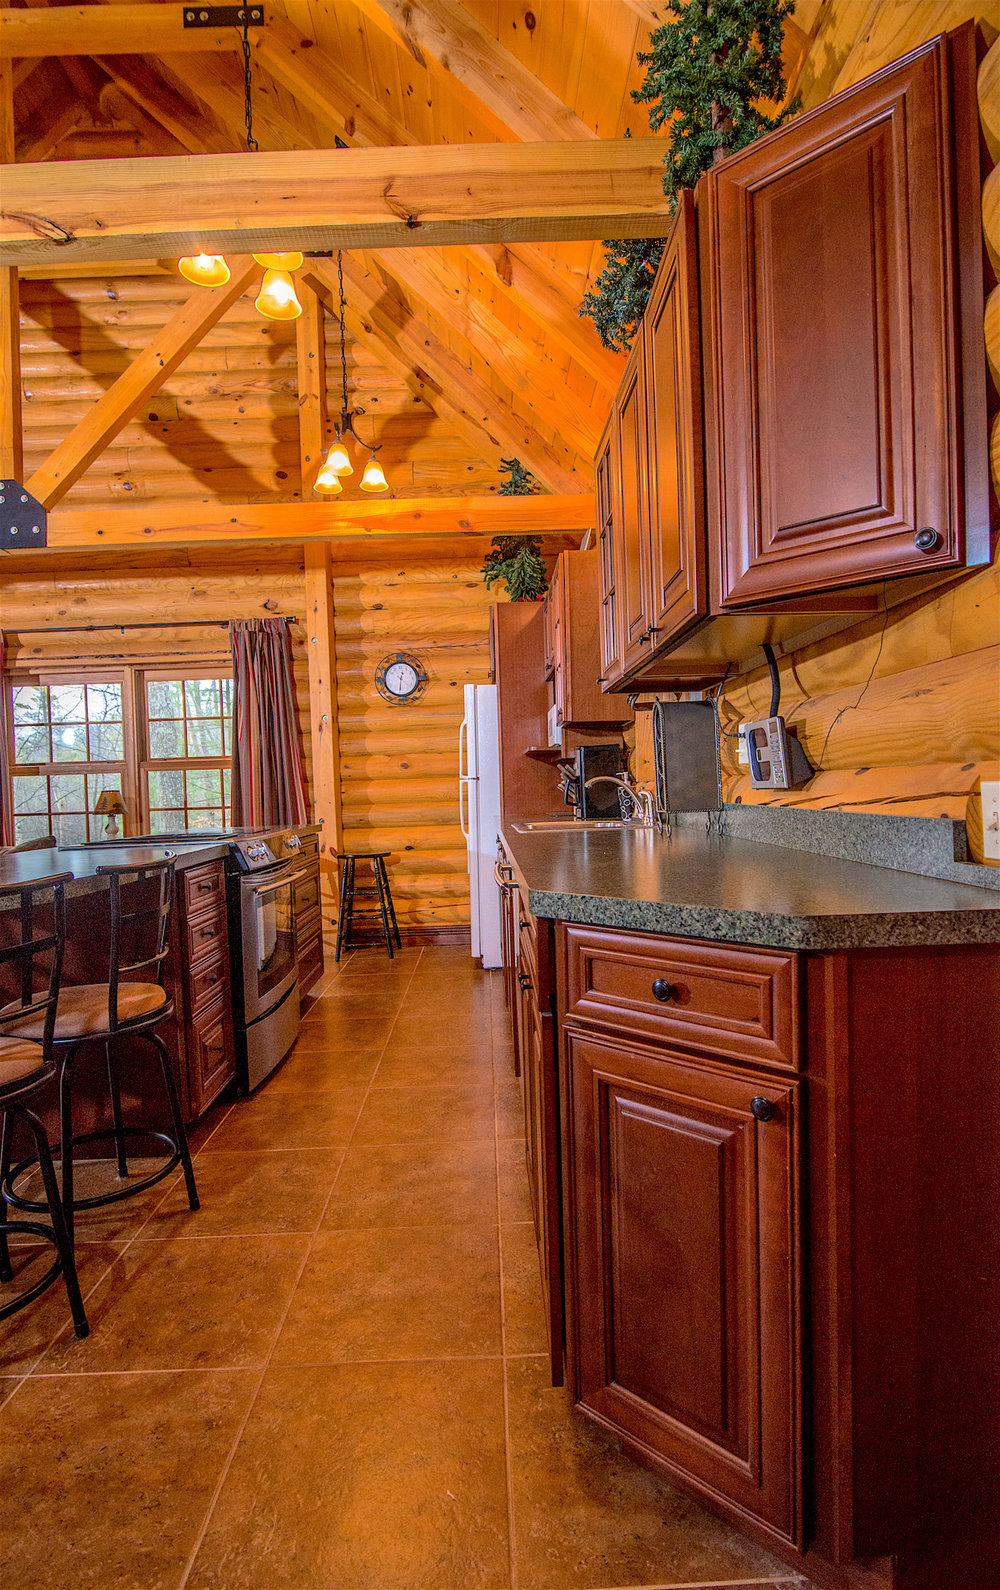 Pentwater Michigan Cabin Galley Kitchen.jpg